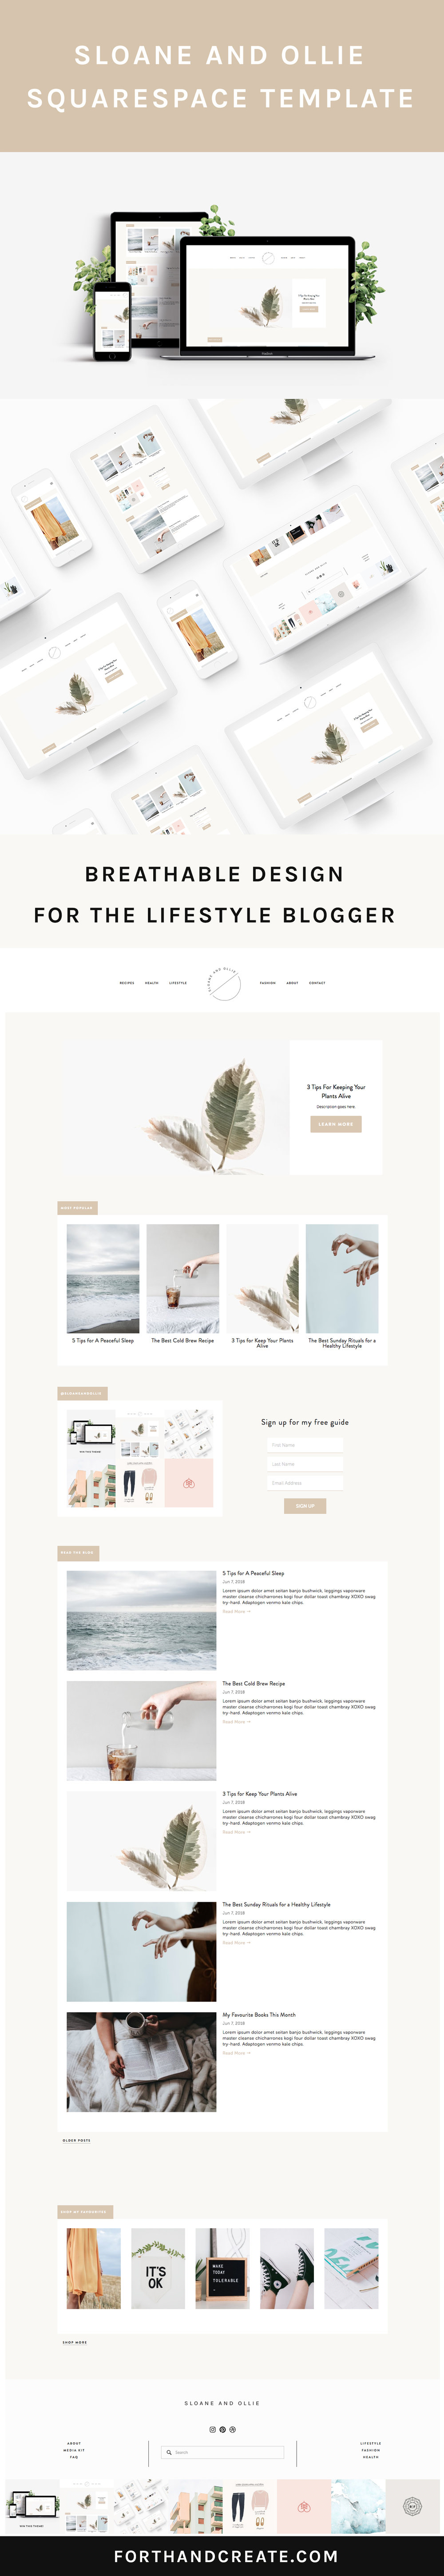 Sloane-Ollie-Squarespace-Template.jpg